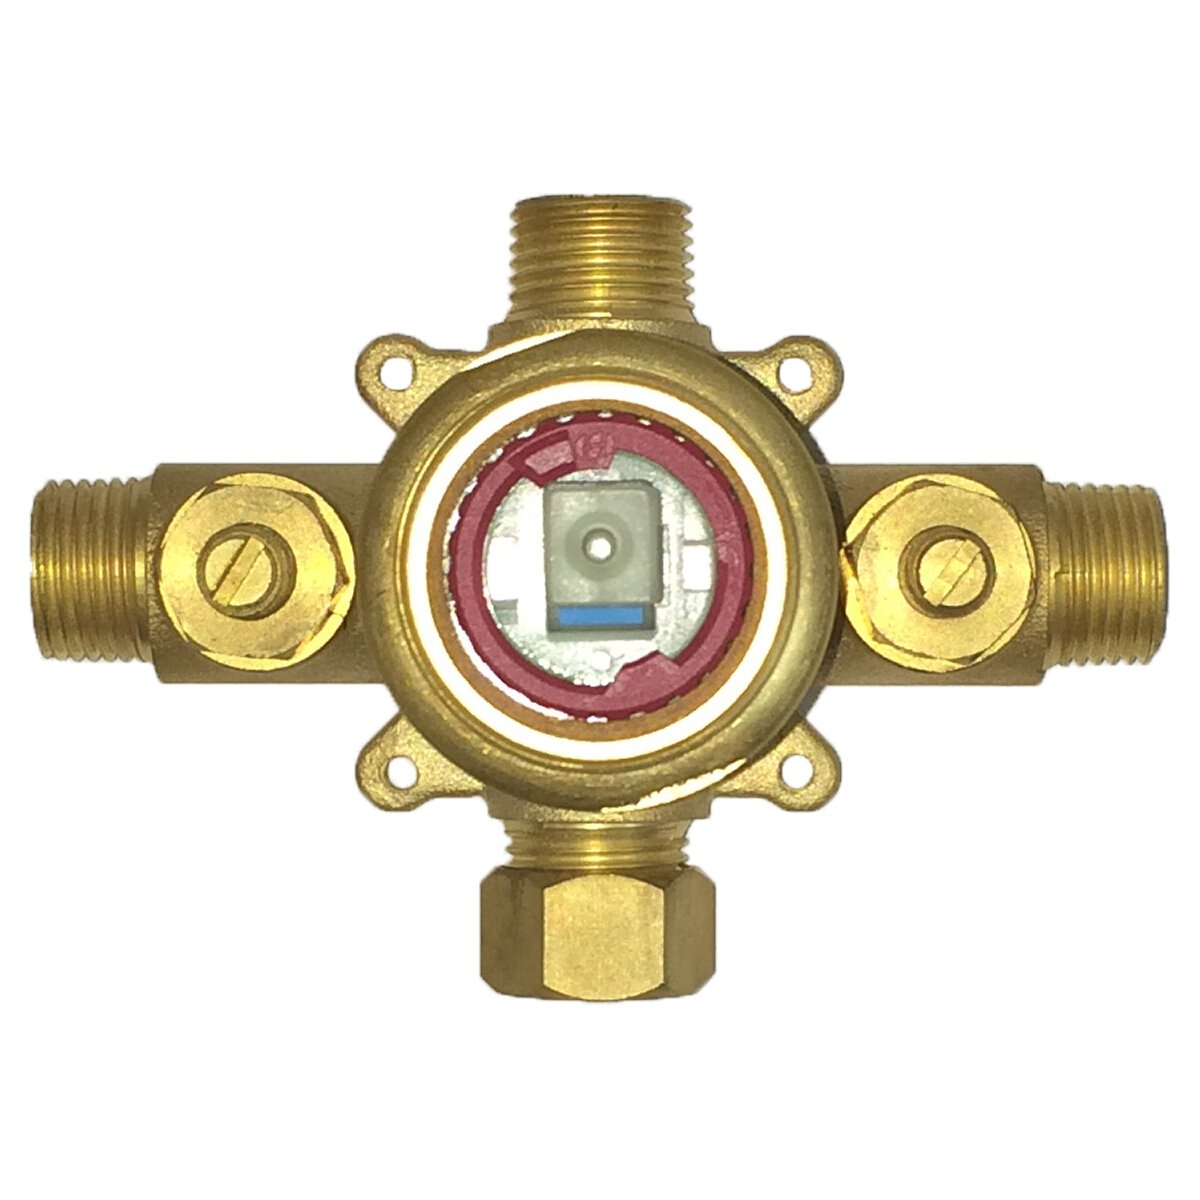 Pulse 3001-RIV-PB Tru-Temp Spa Shower Rough-In Valve, Brass